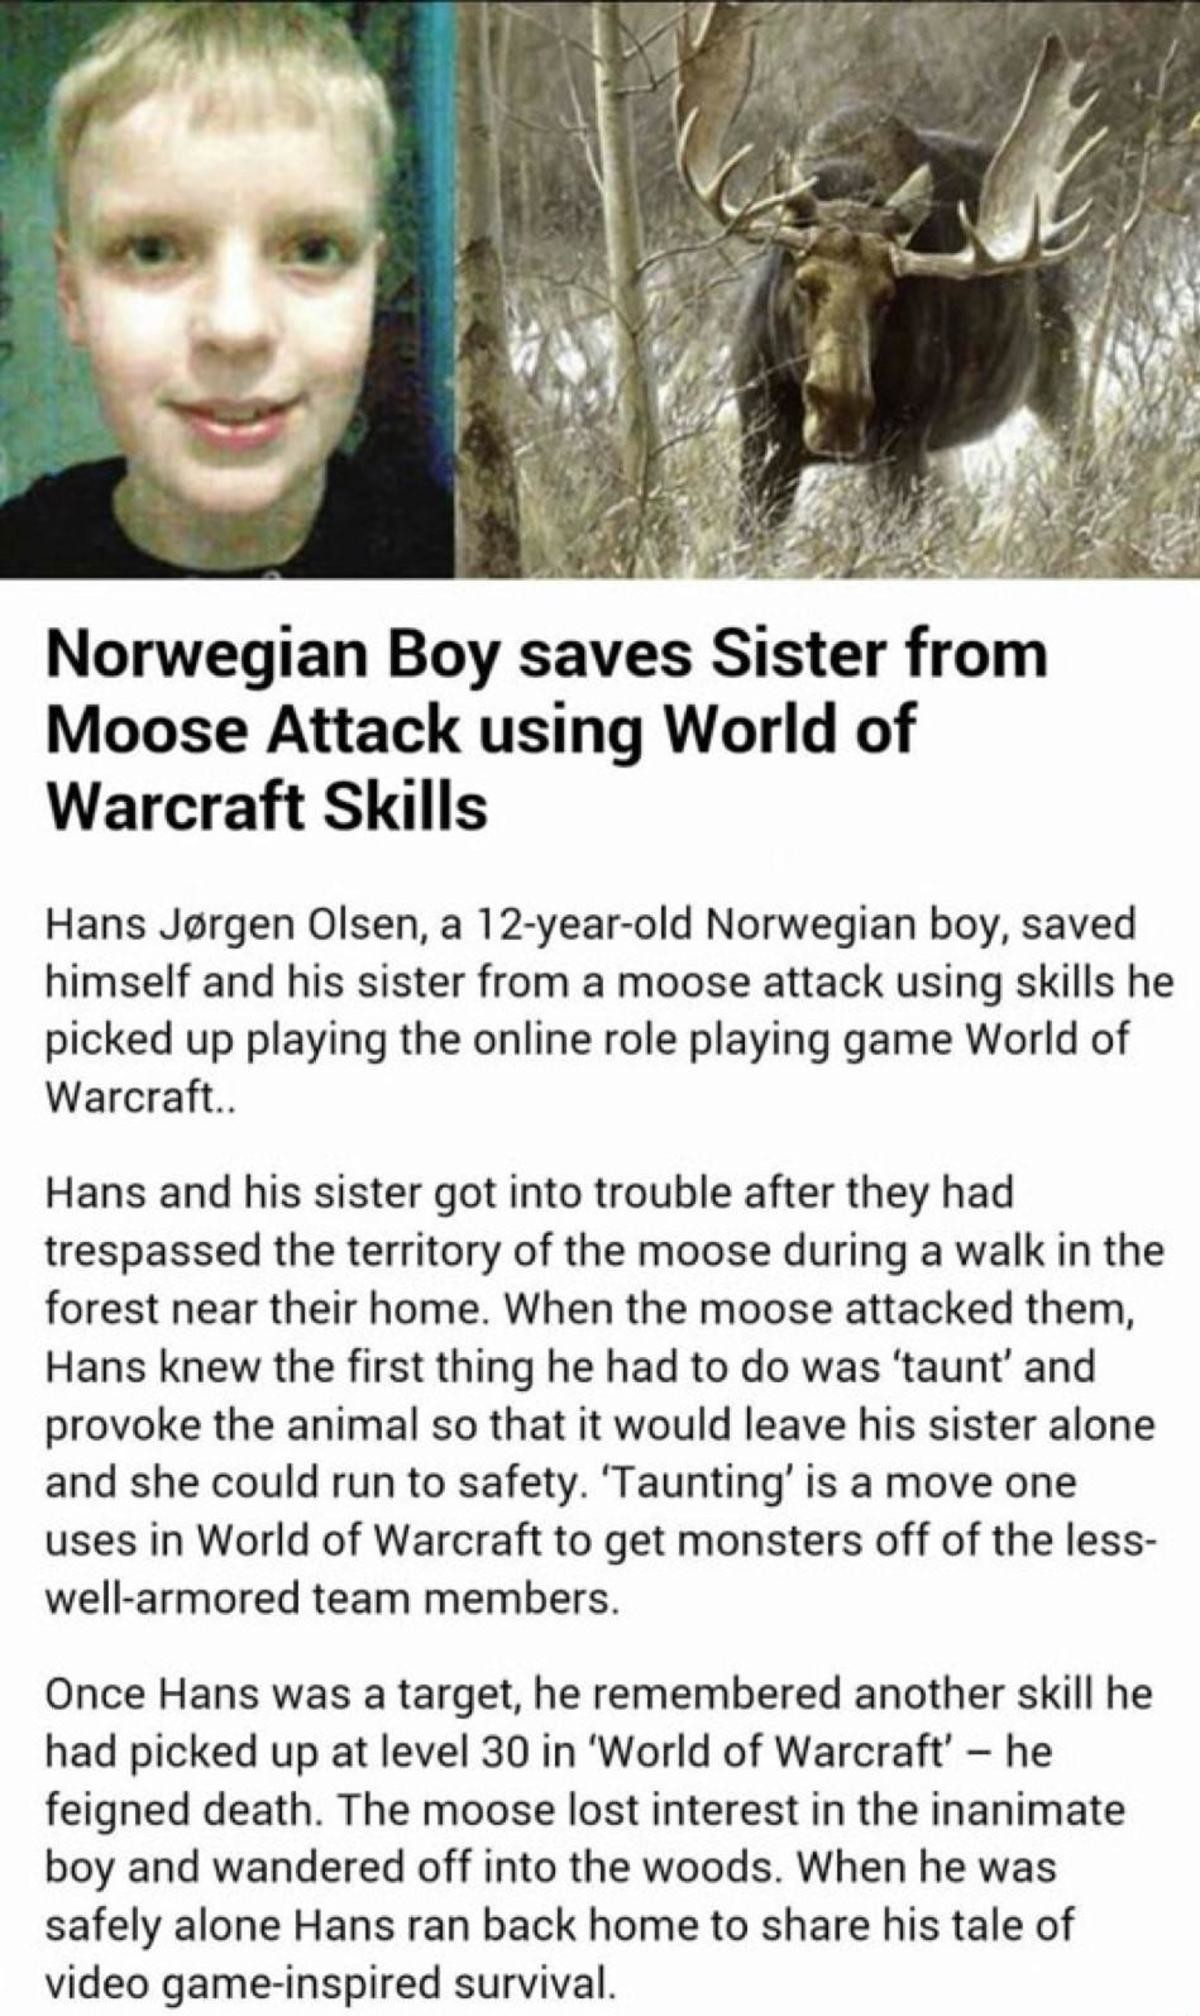 """""""Games hurt childrens minds"""". join list: VideoGameHumor (1707 subs)Mention Clicks: 598153Msgs Sent: 5837304Mention History. Norwegian Boy saves Sister from Moos"""